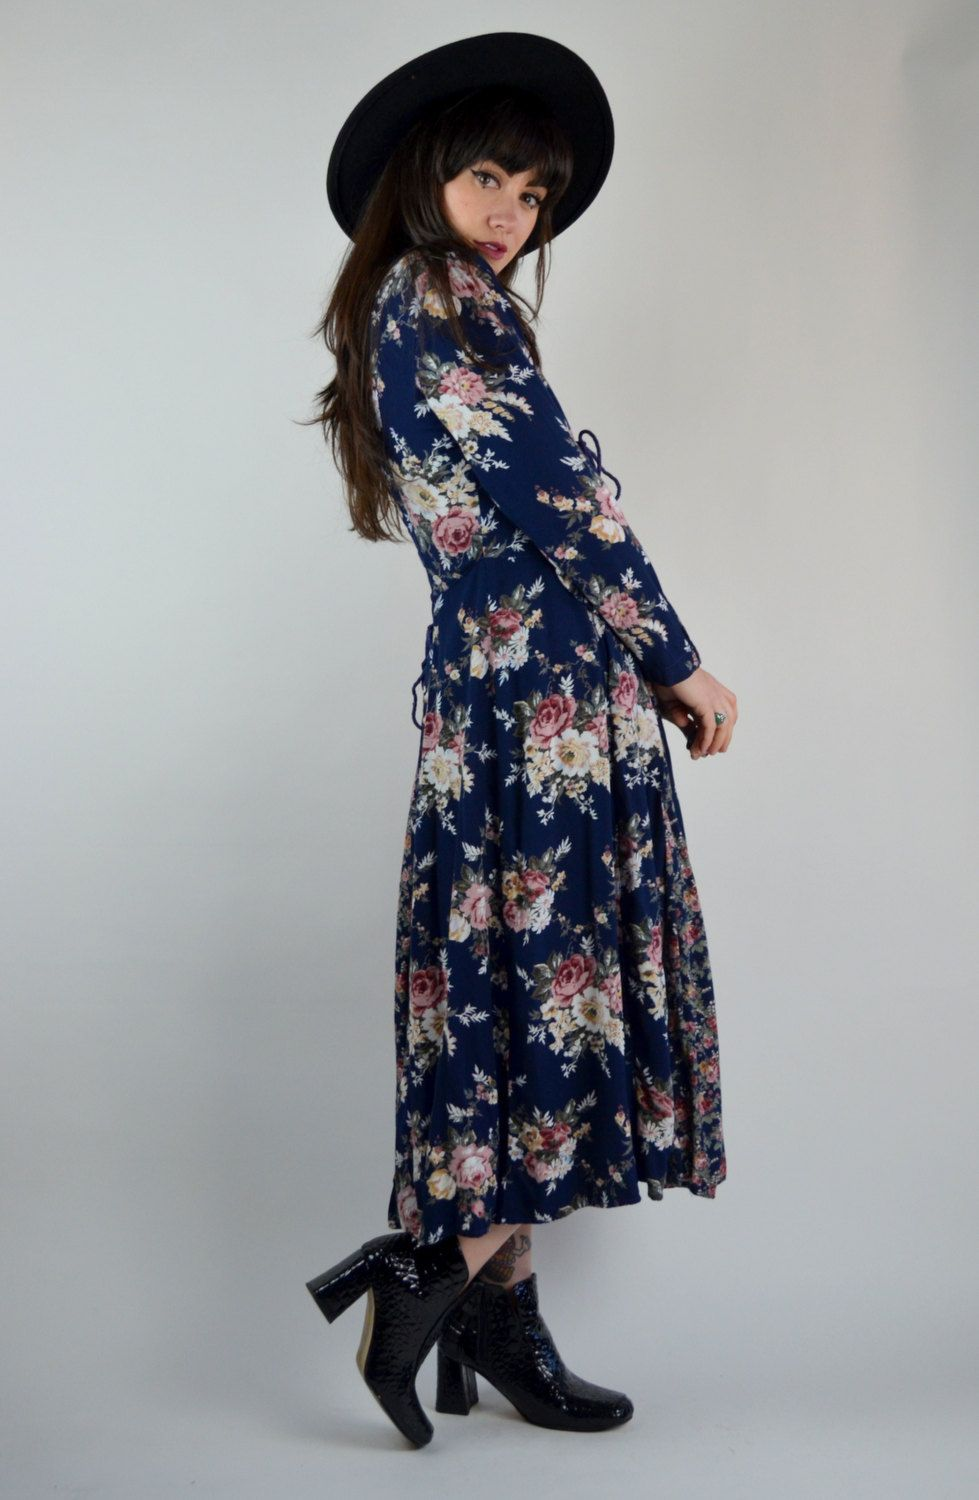 e58a6fa819c Gorgeous 1990s Starina dress! Made in a navy blue rayon with a bold floral  print